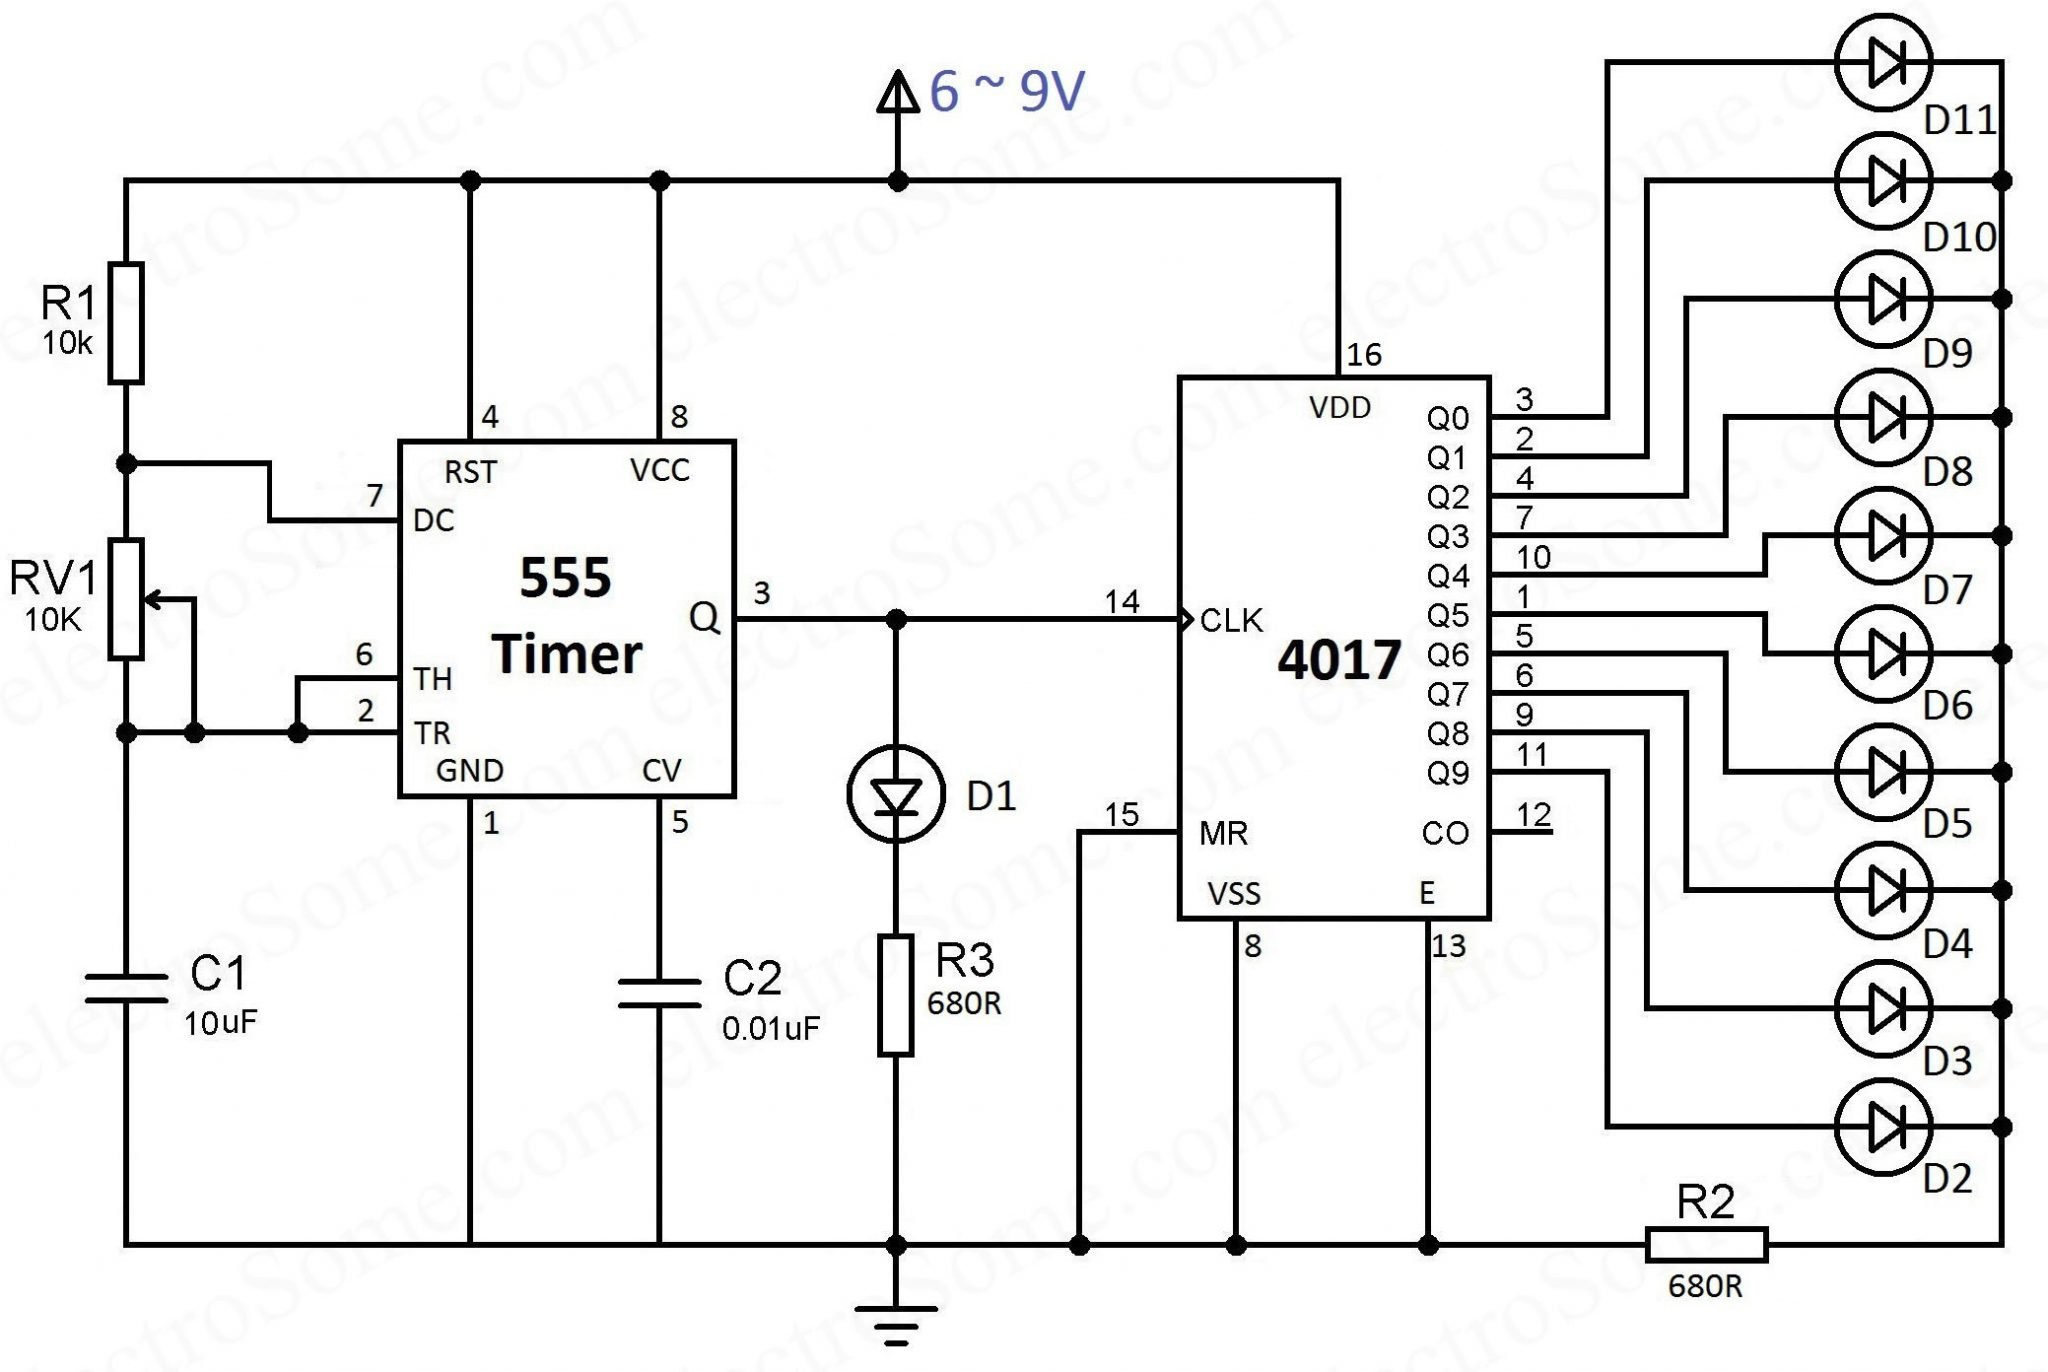 September 2013 Diagram And Circuit